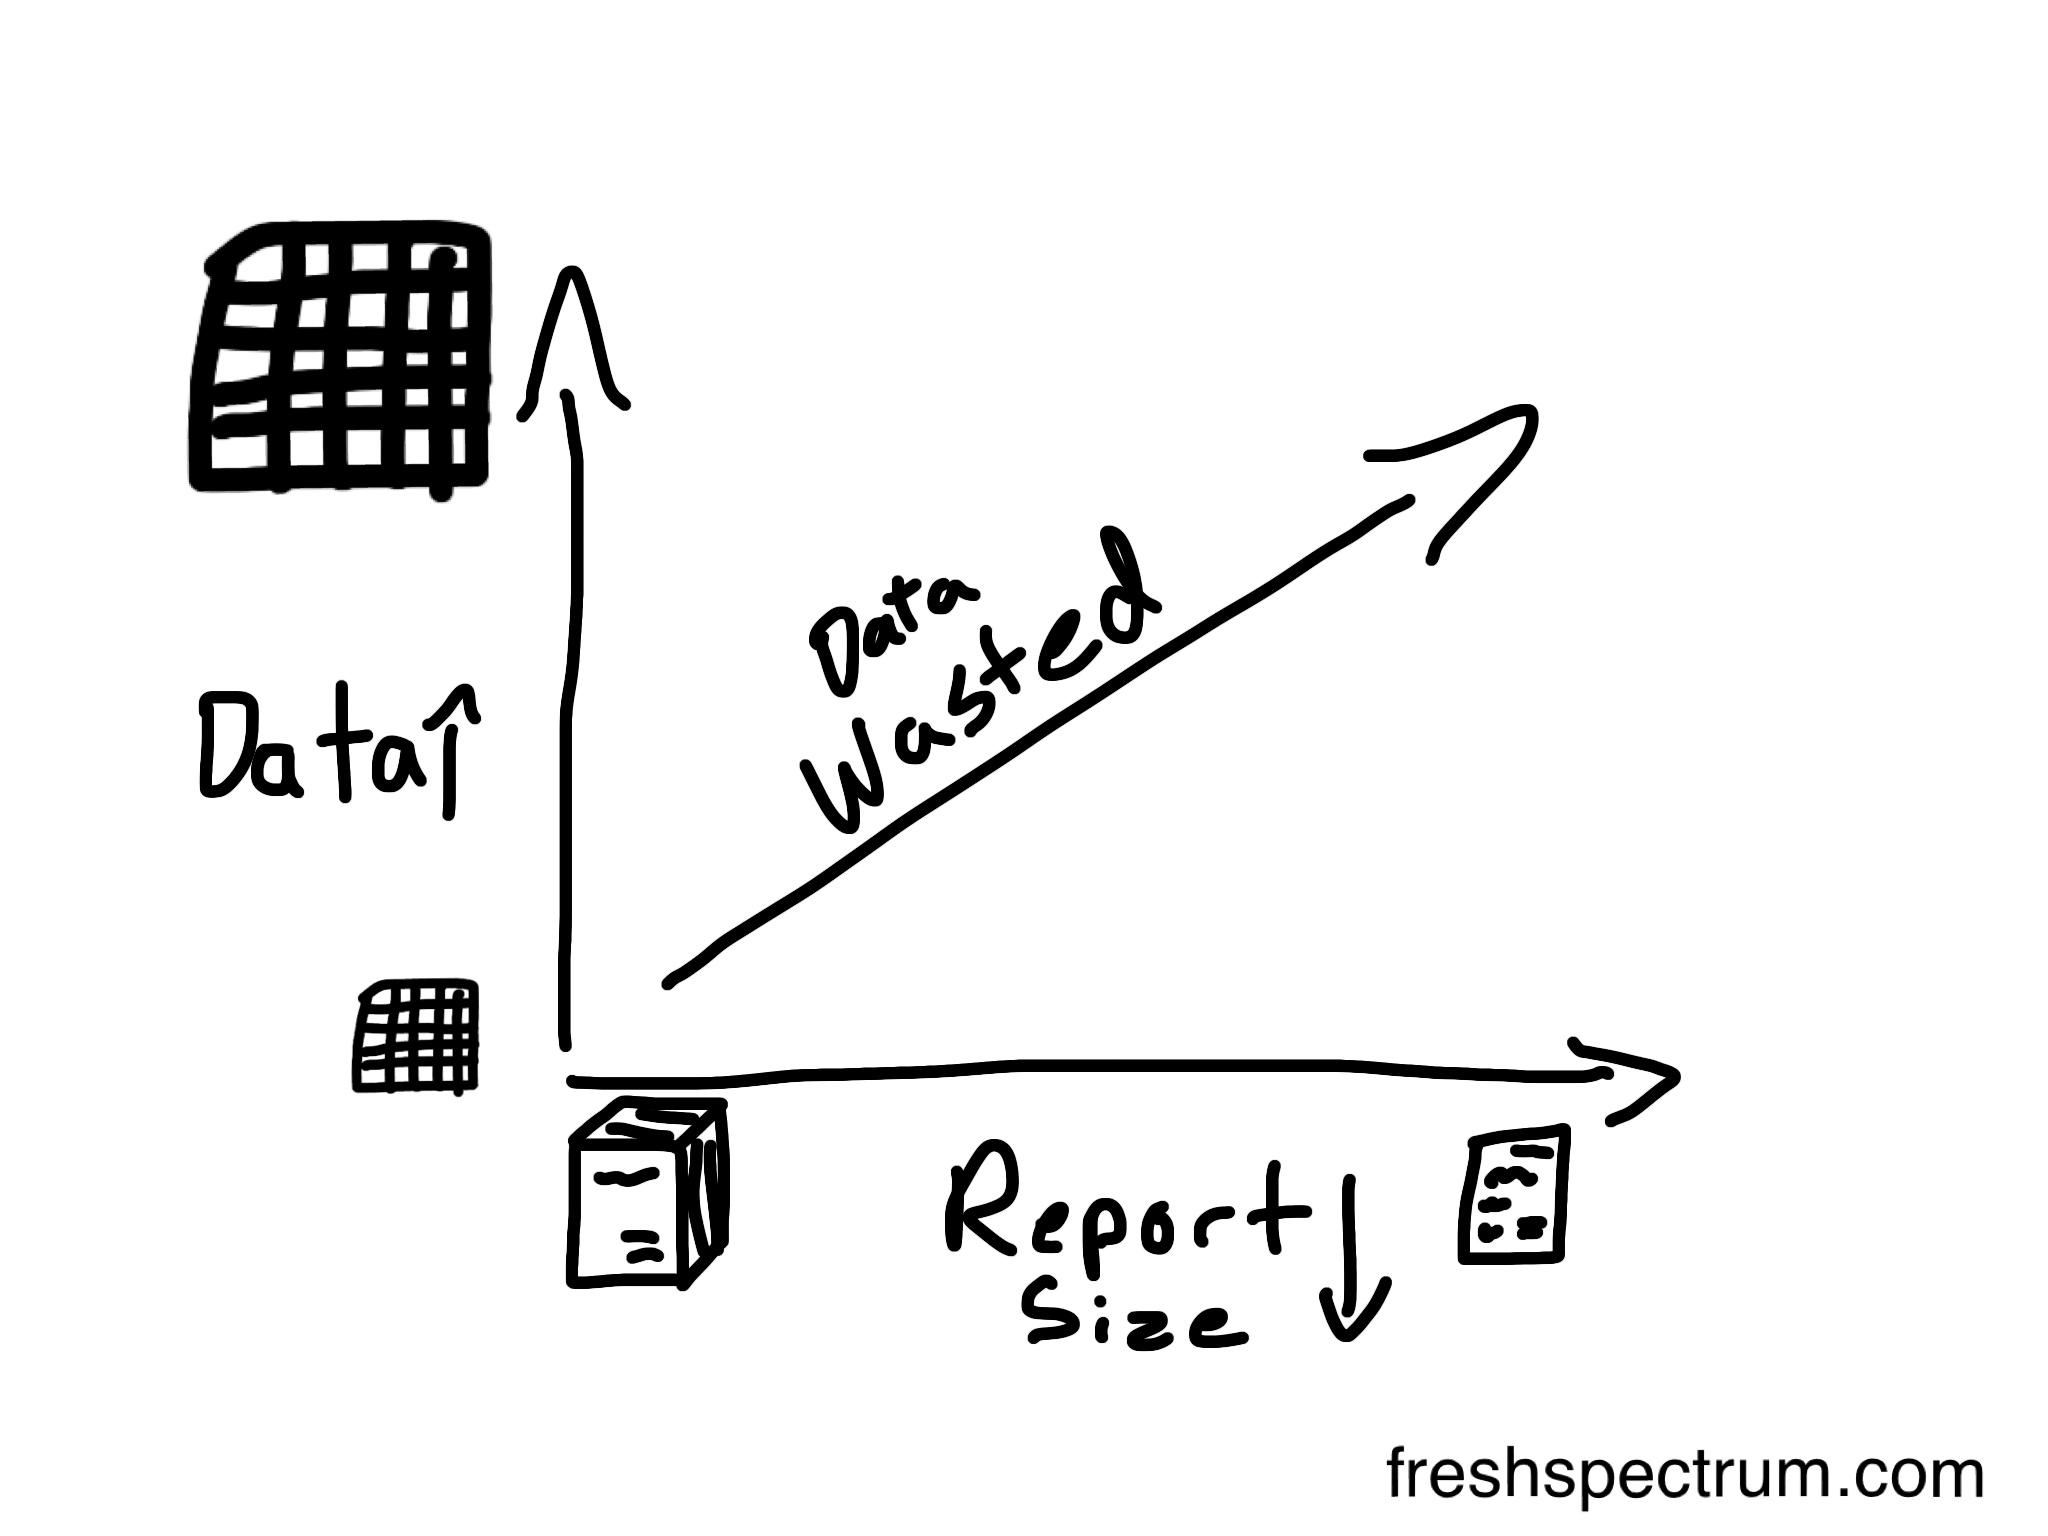 More data, shorter reports: three ways to respond